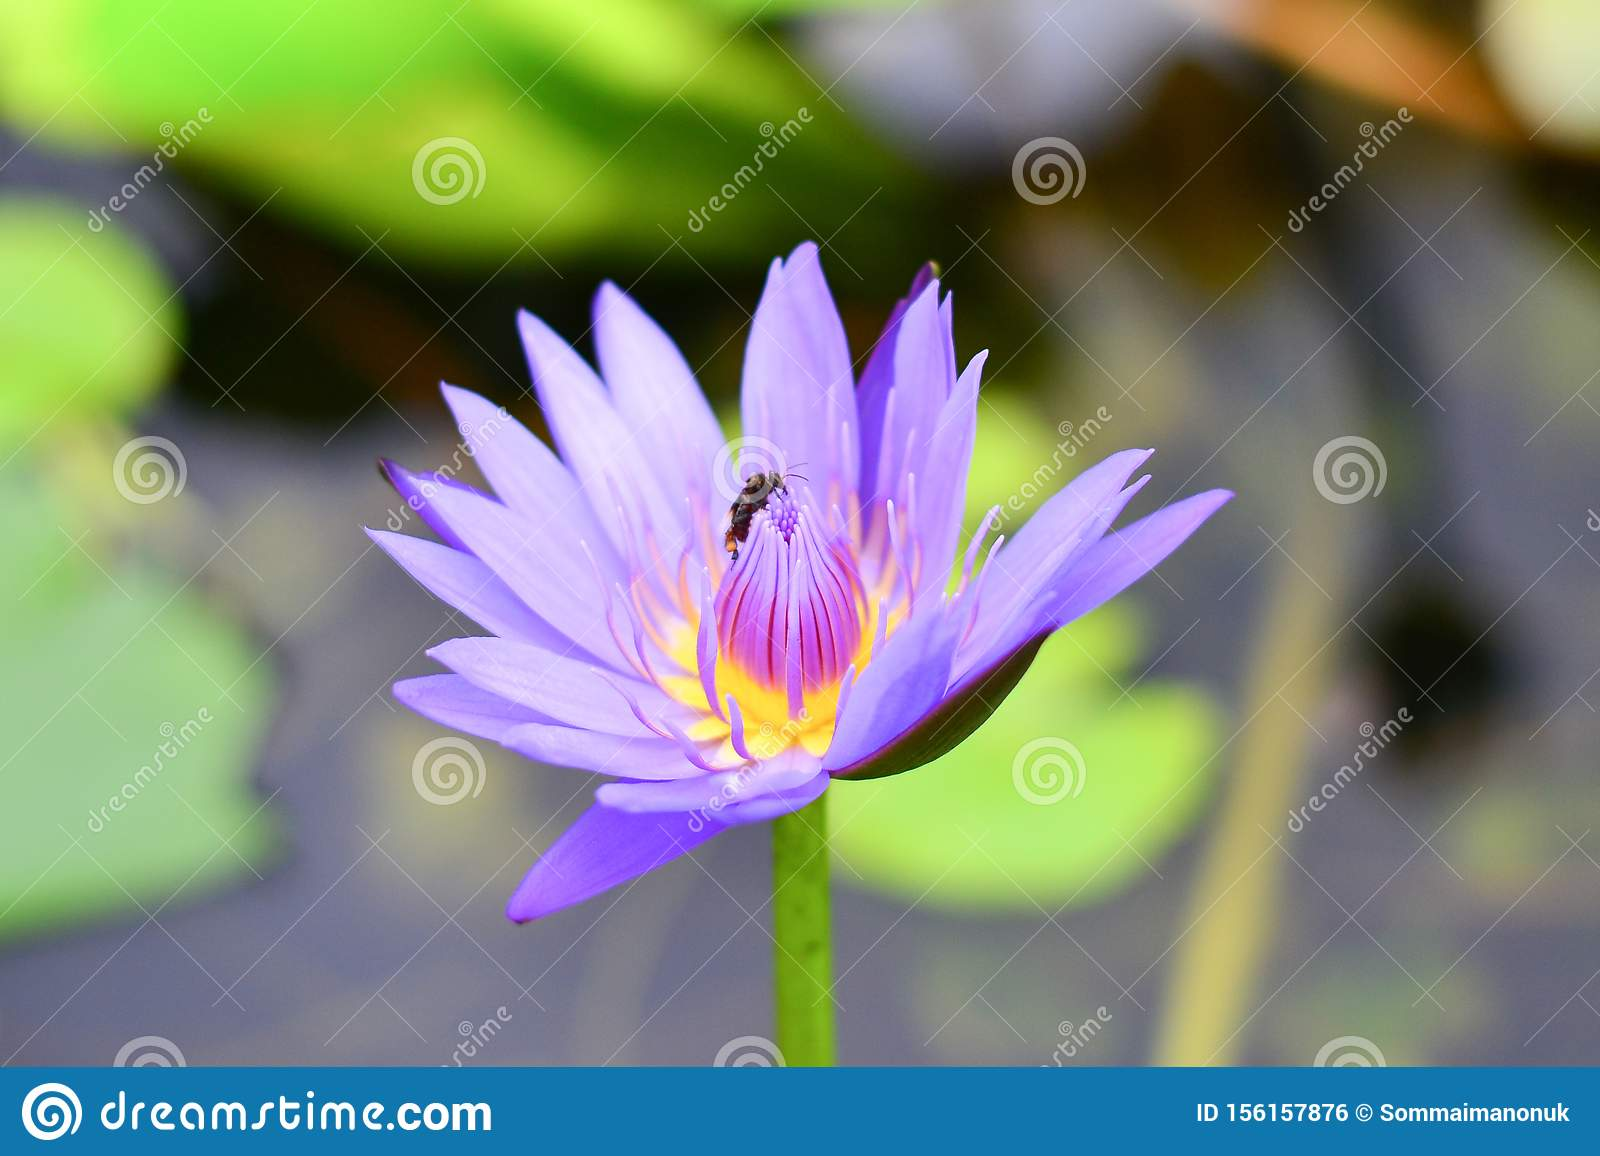 The Lotus Flower with the Bee. The bee was approaching the center of flower finding its food based on sweet aroma of the flower